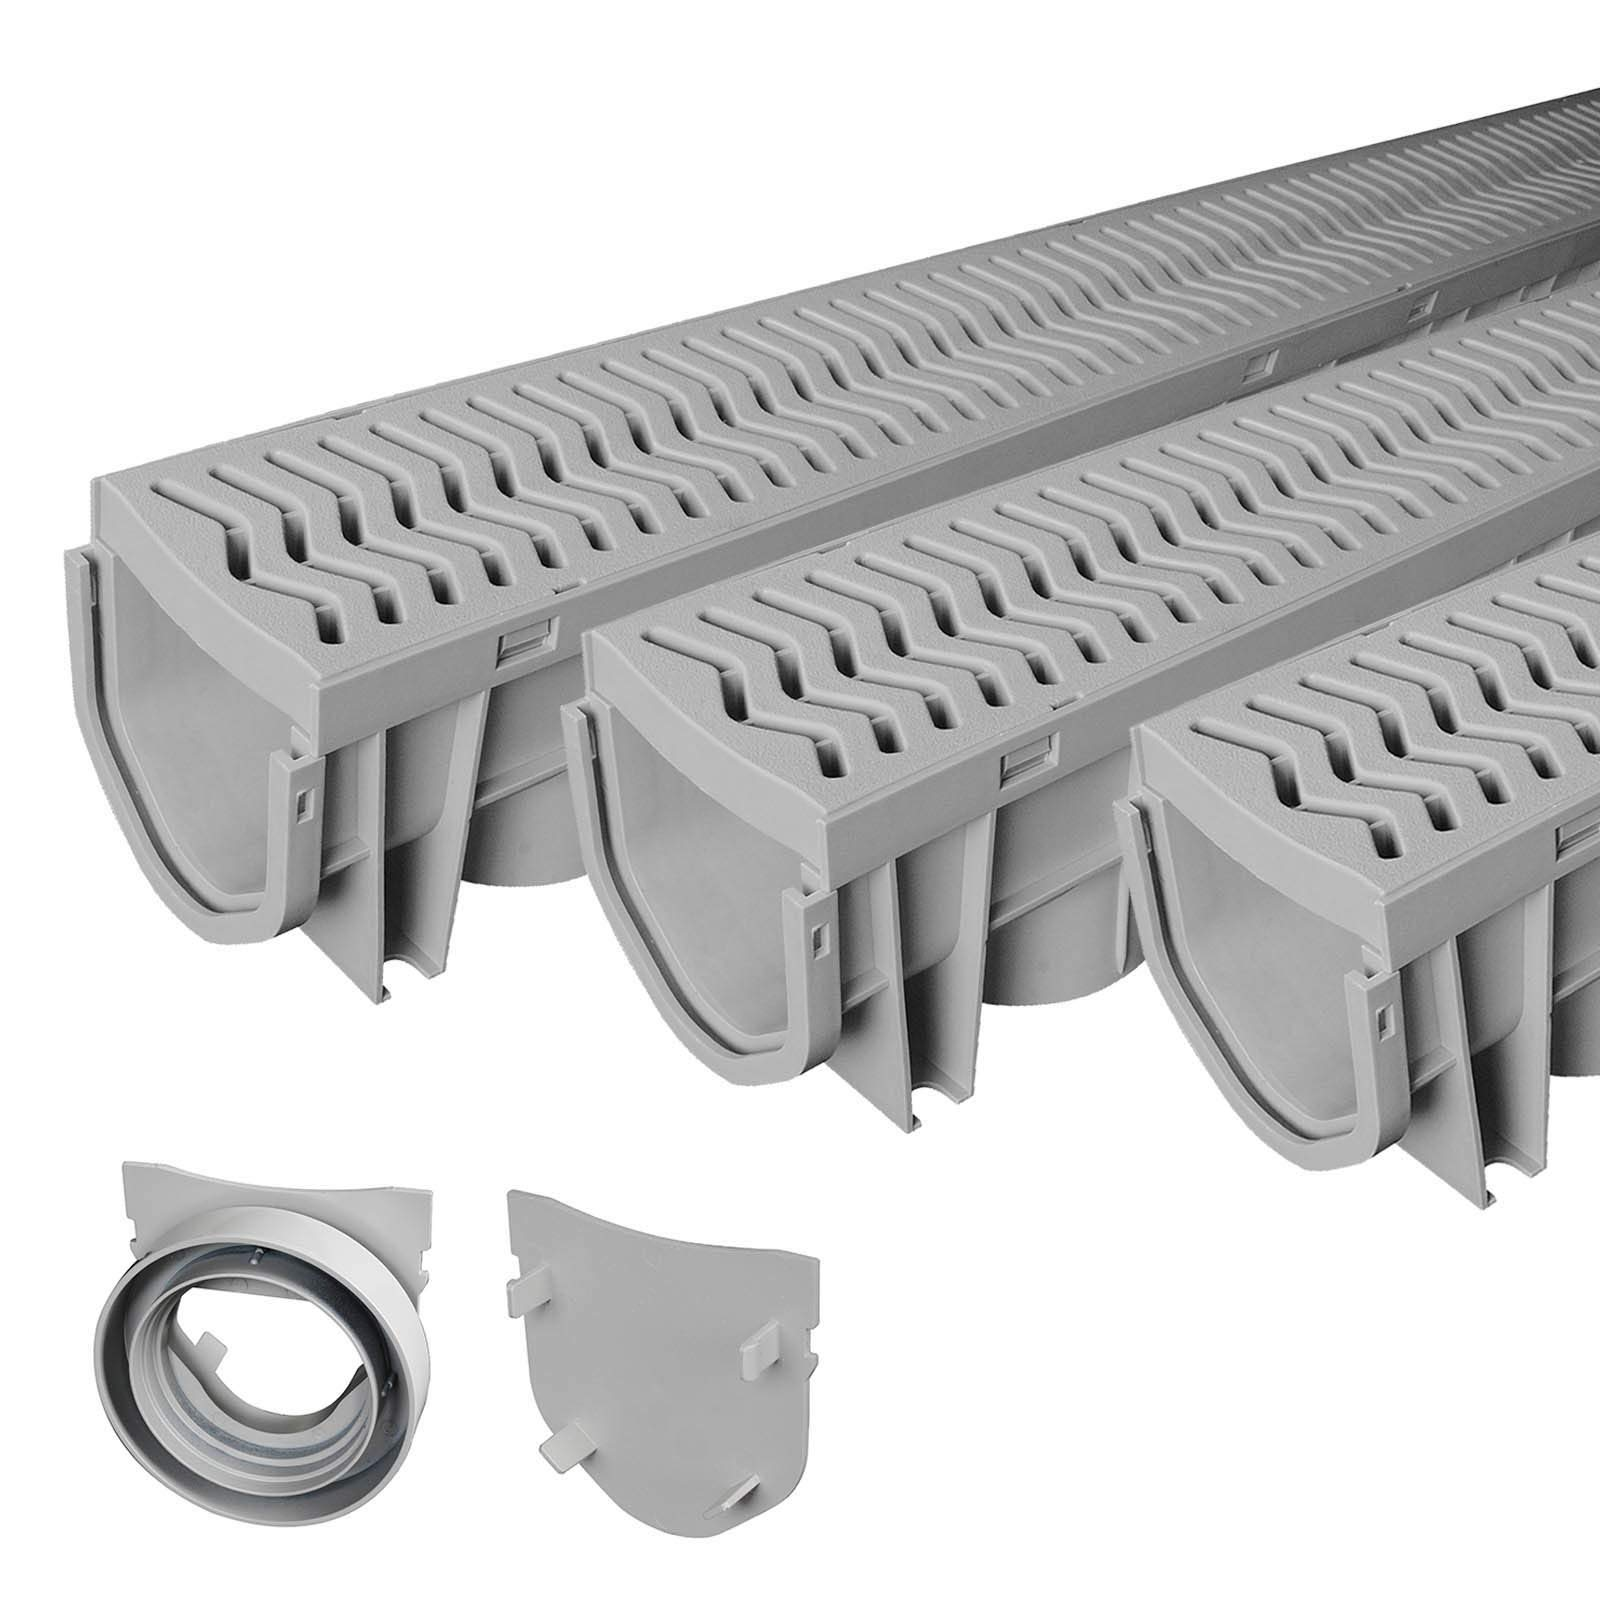 Source 1 Drainage 3-Pack Trench & Driveway Channel Drain System With Grates by Source 1 Drainage (Image #1)